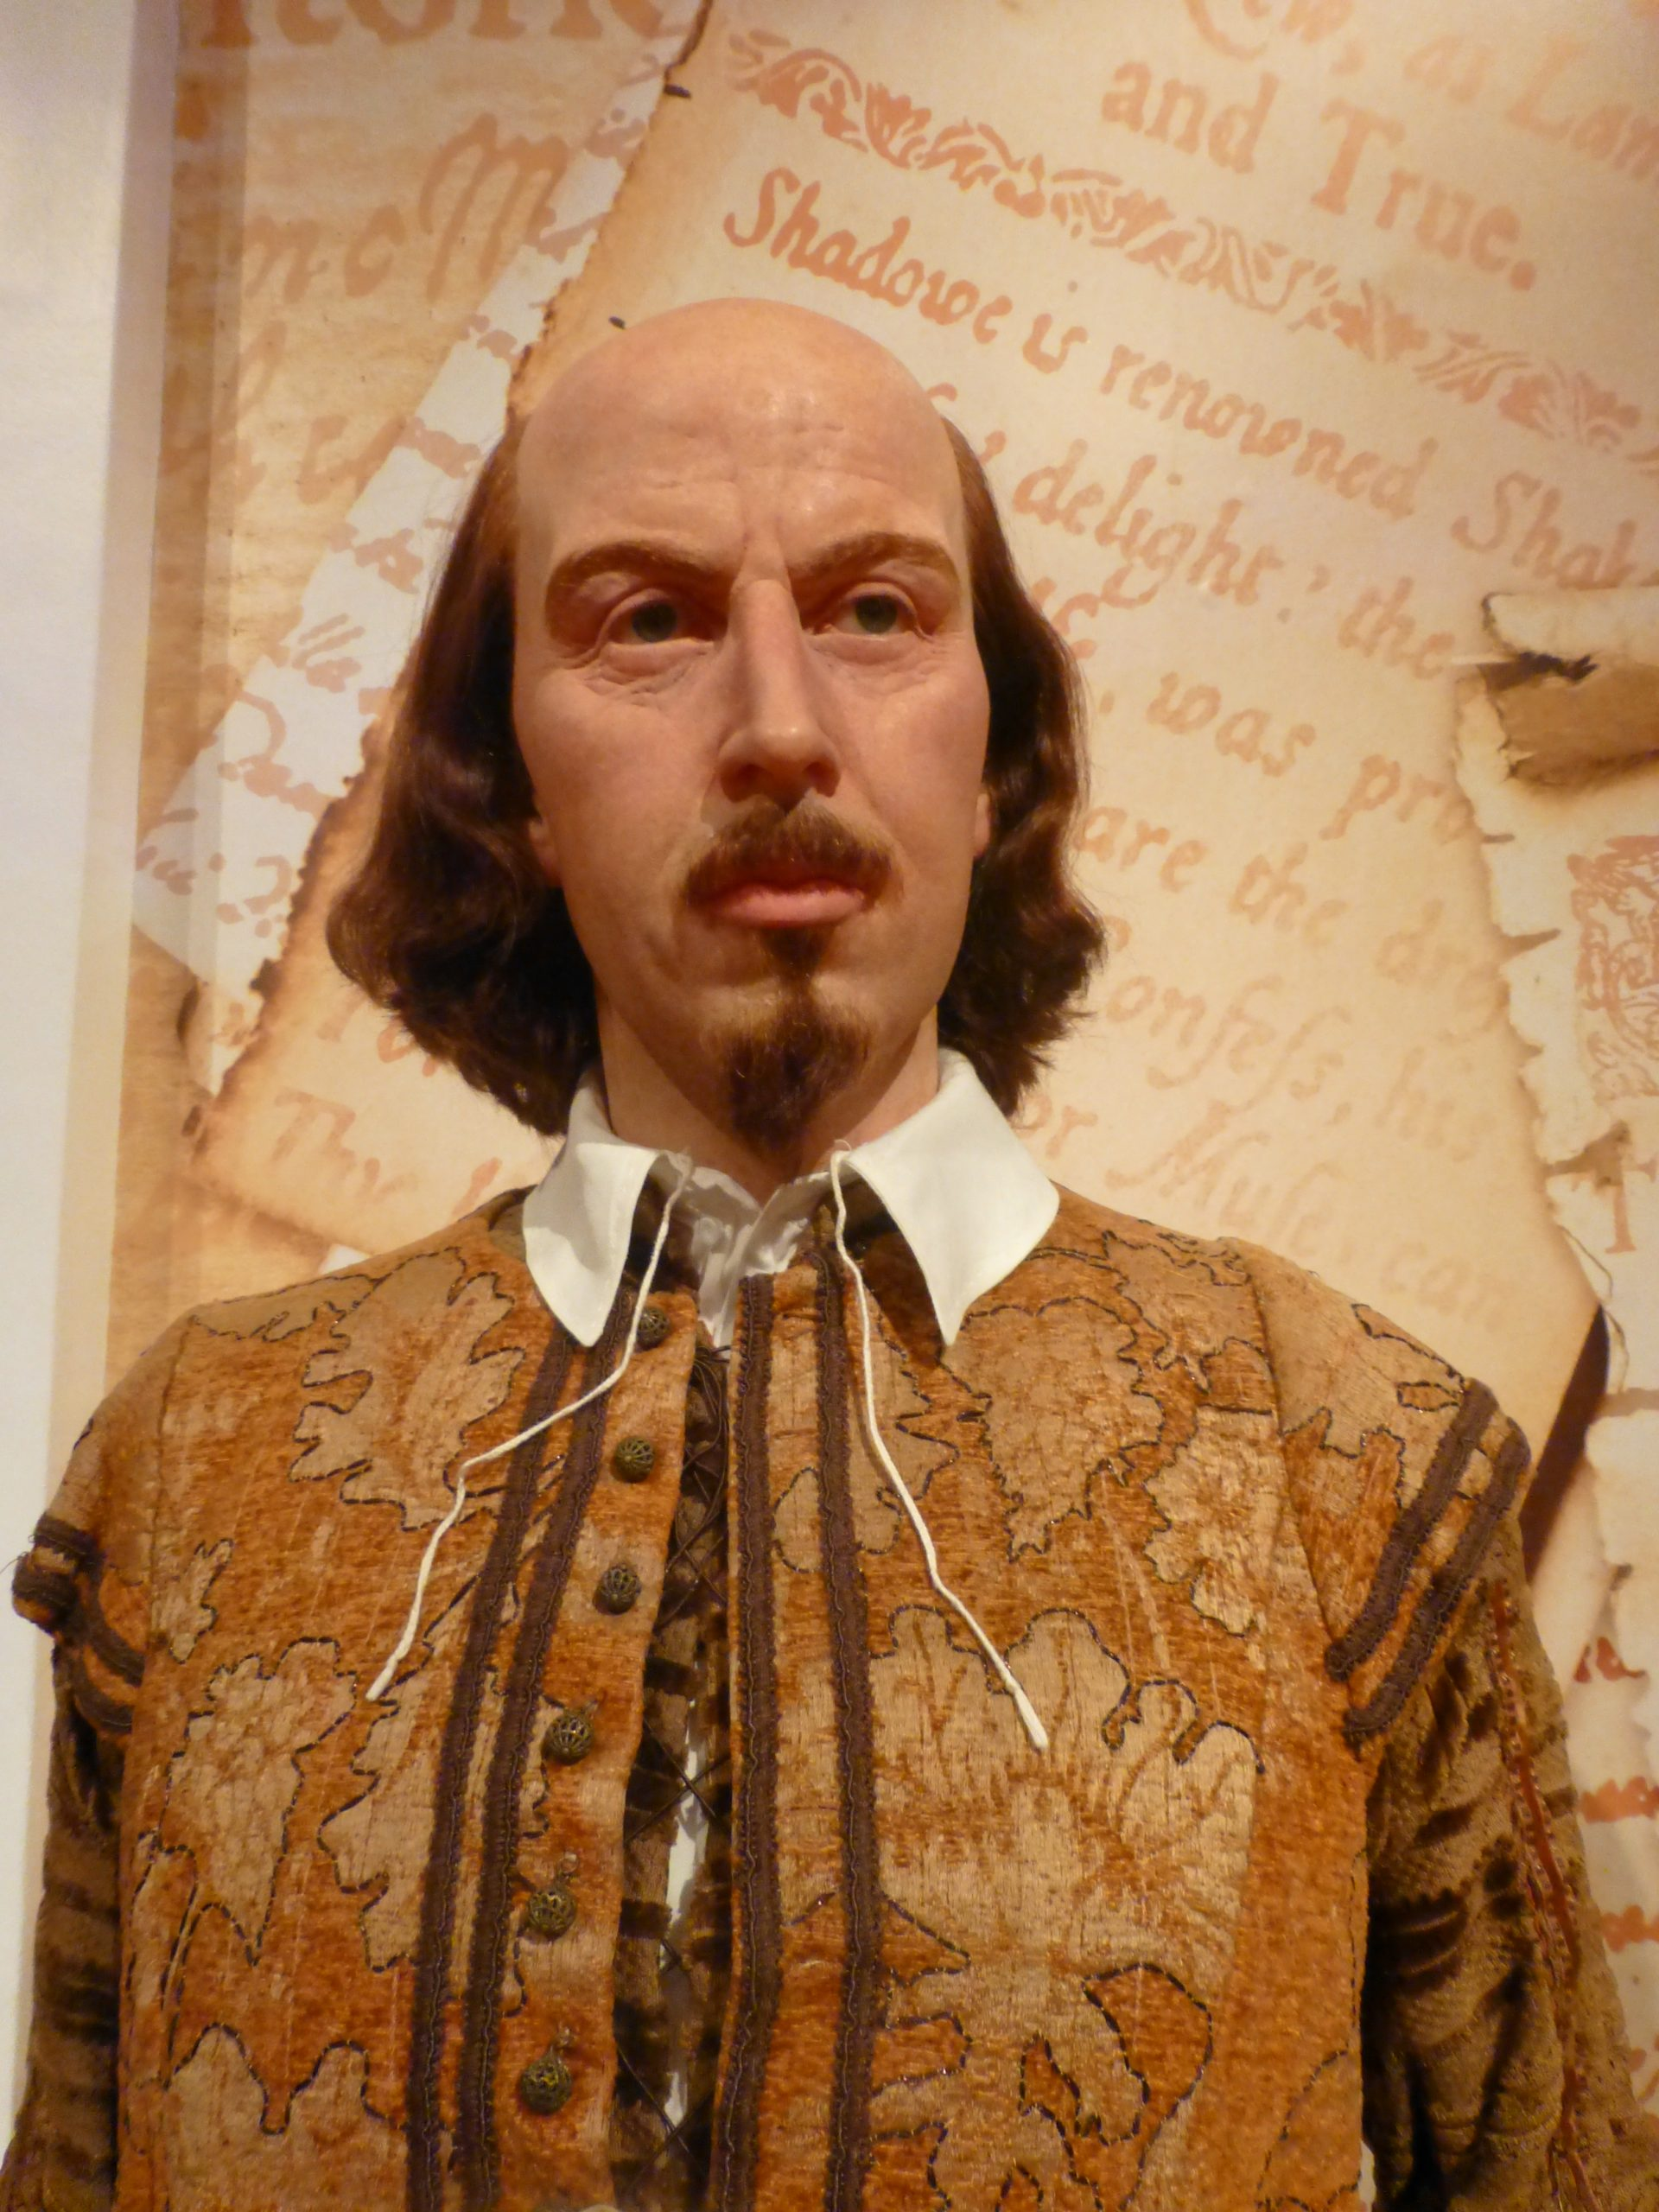 William Shakespeare bei Madame Tussauds